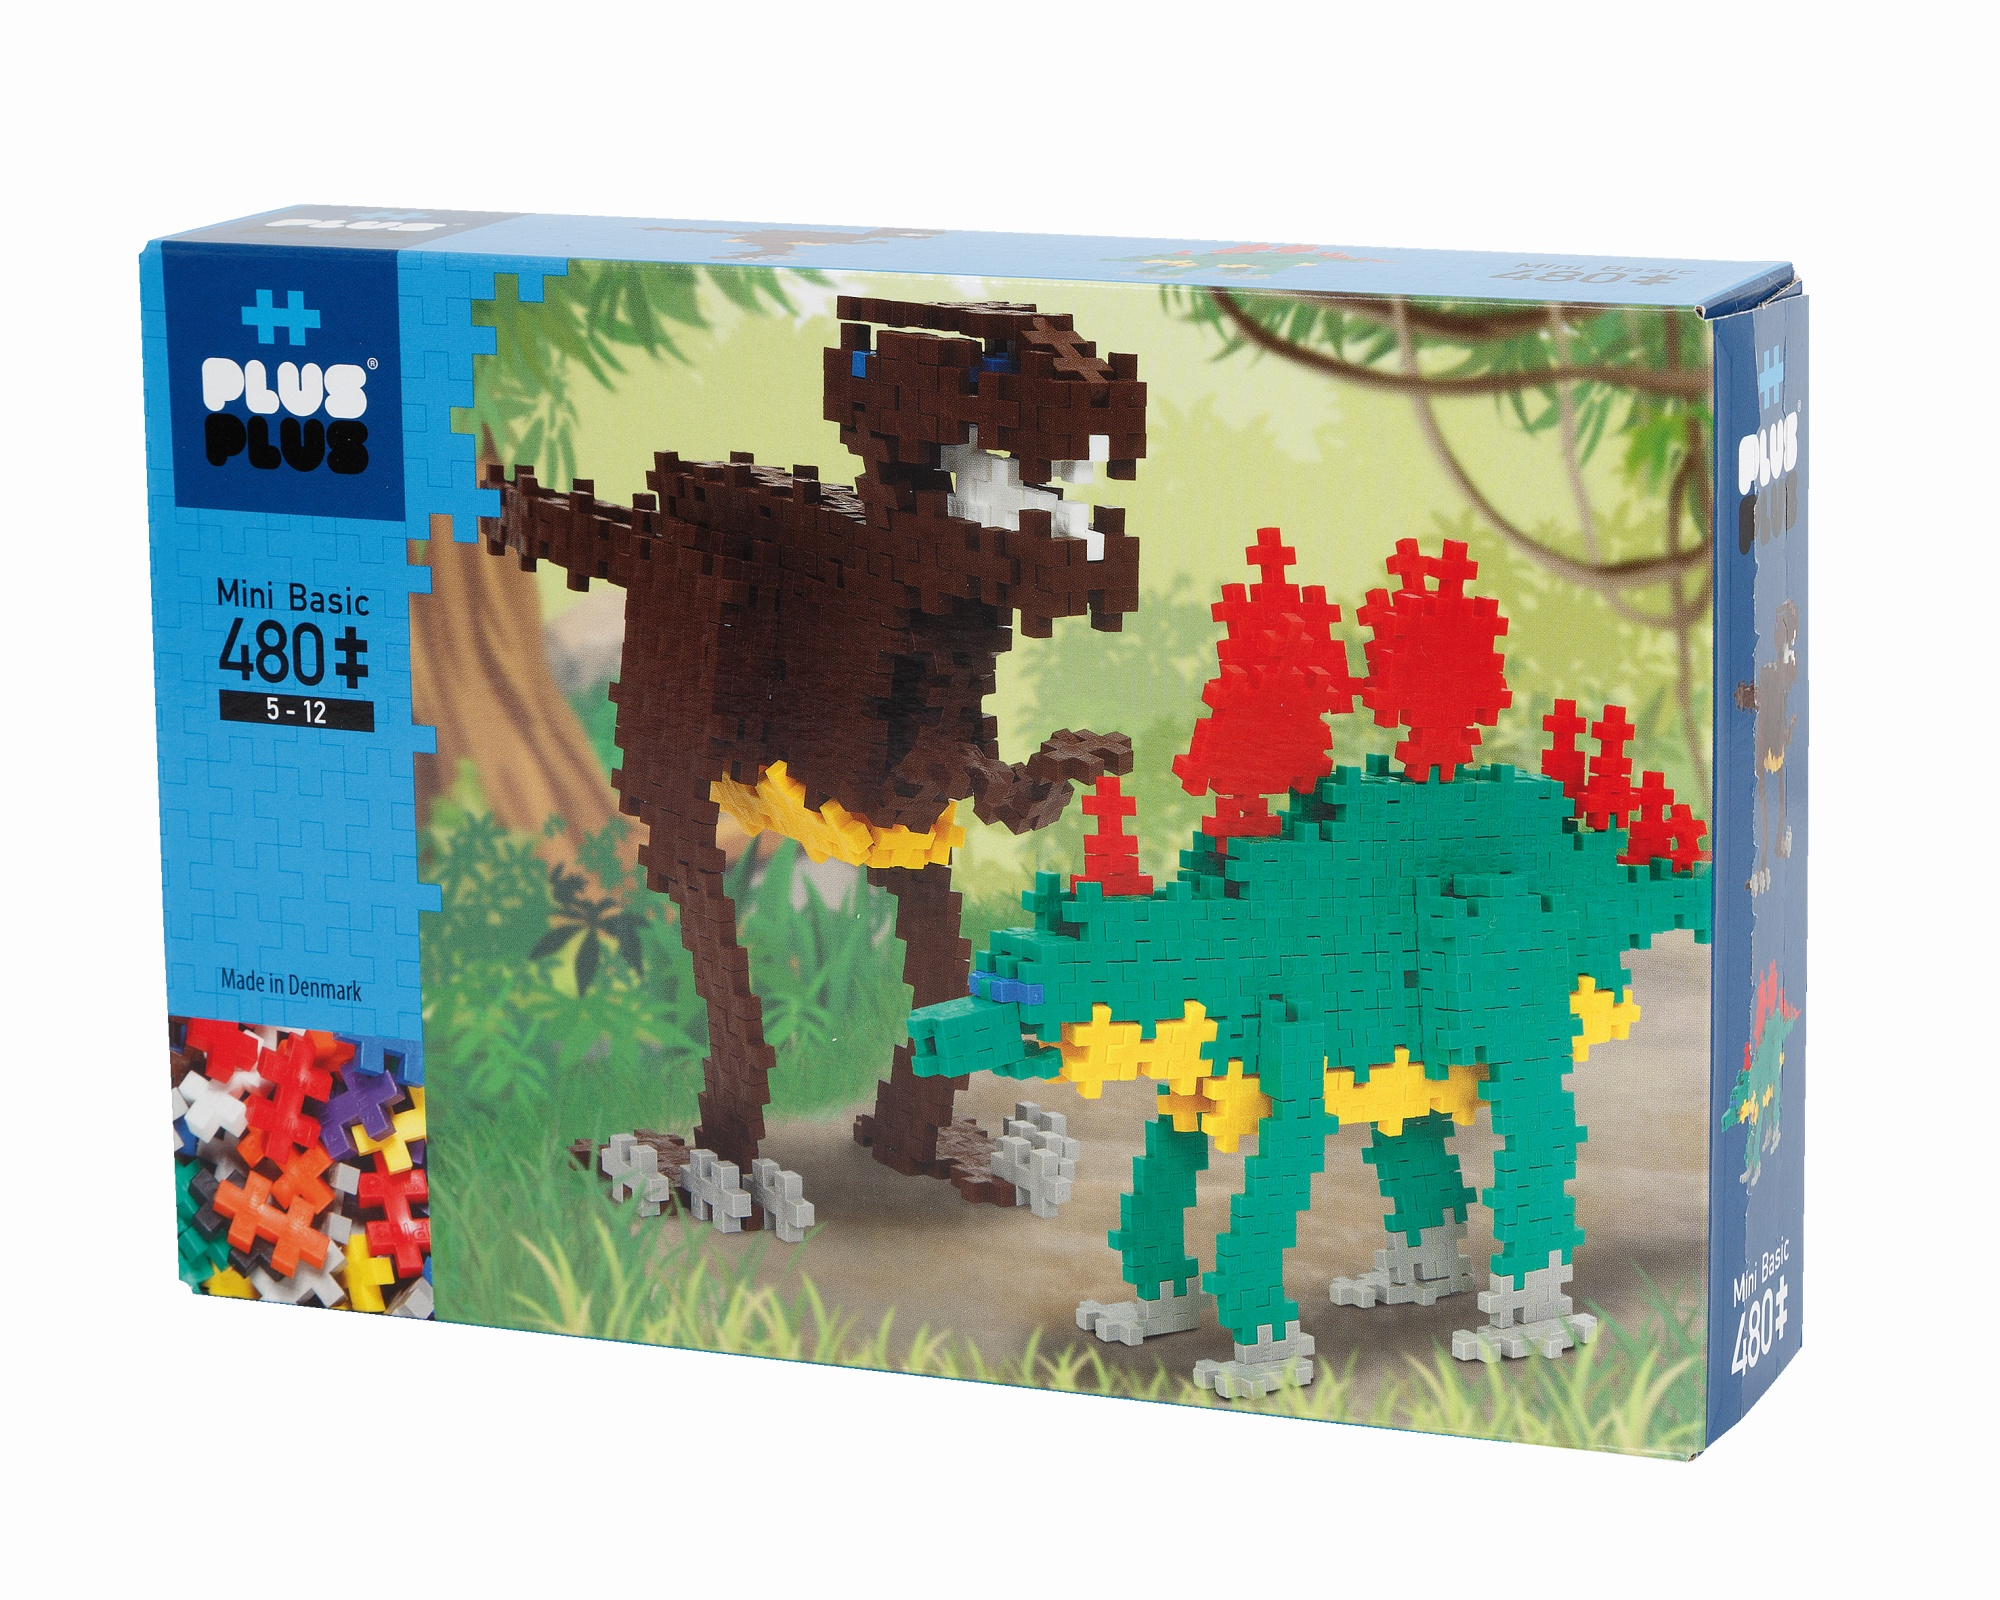 Plus Plus Basic Dinozauri - 480 Pcs